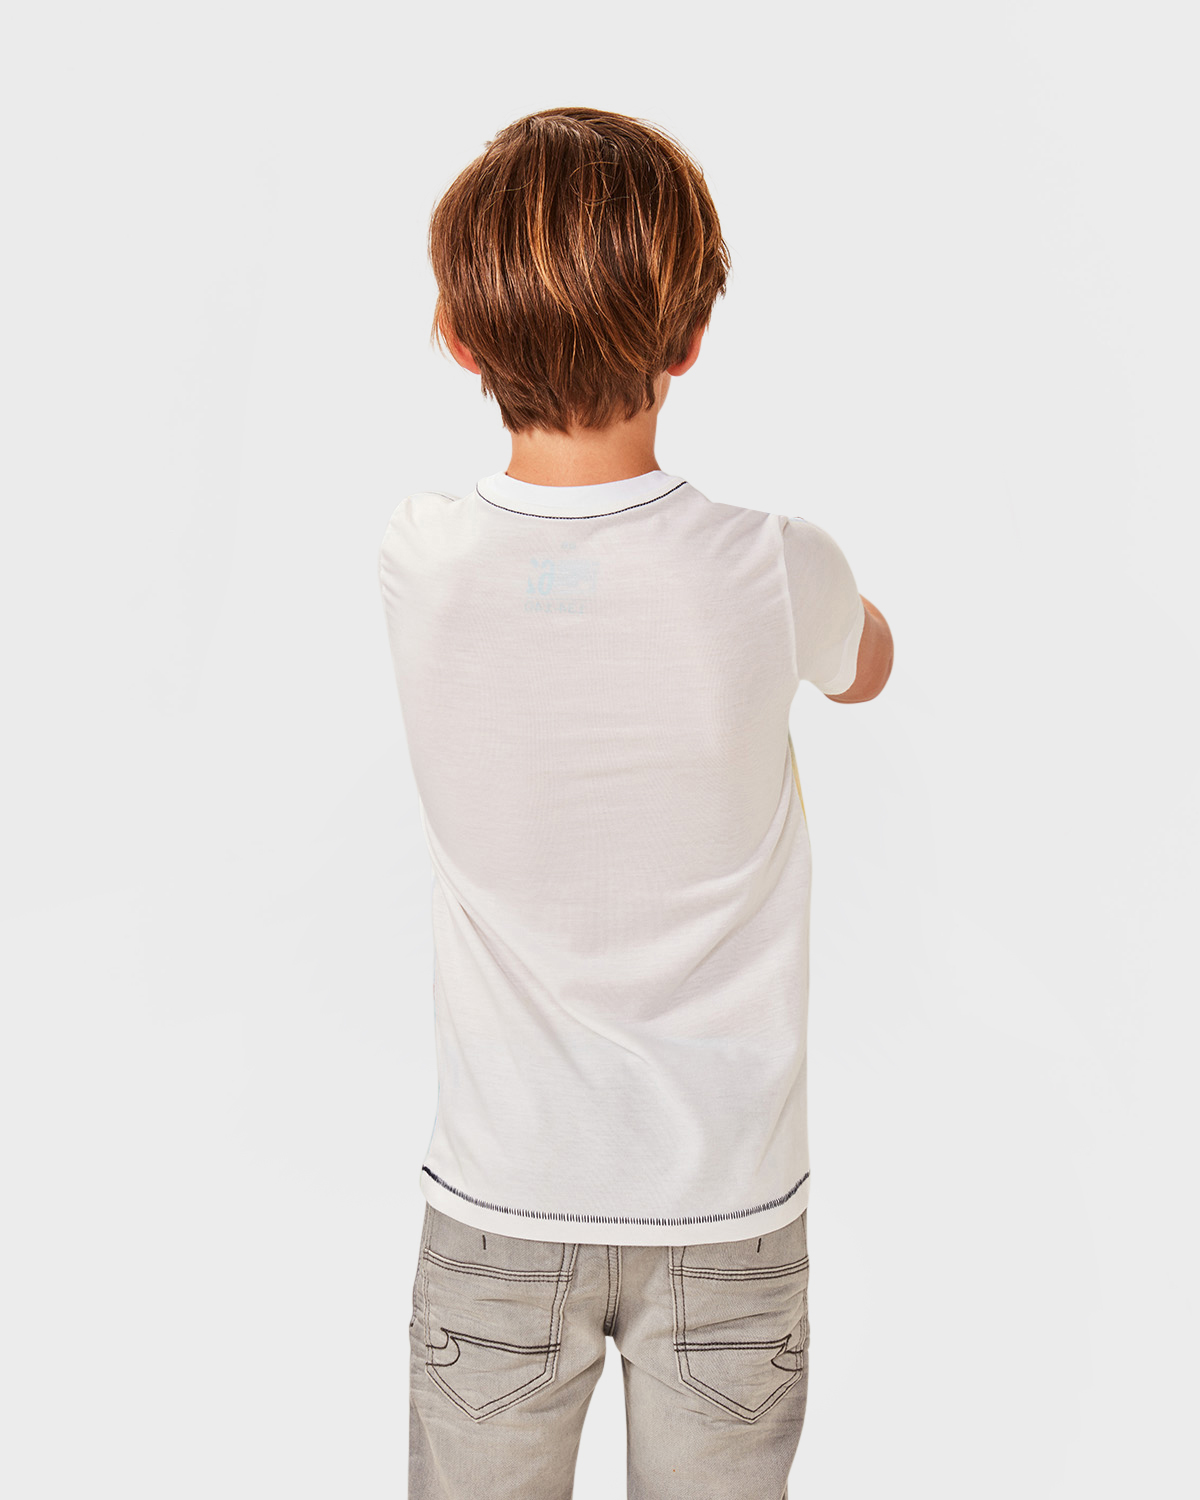 Jungen t shirt mit summer print 79857345 we fashion for T shirt printing delaware